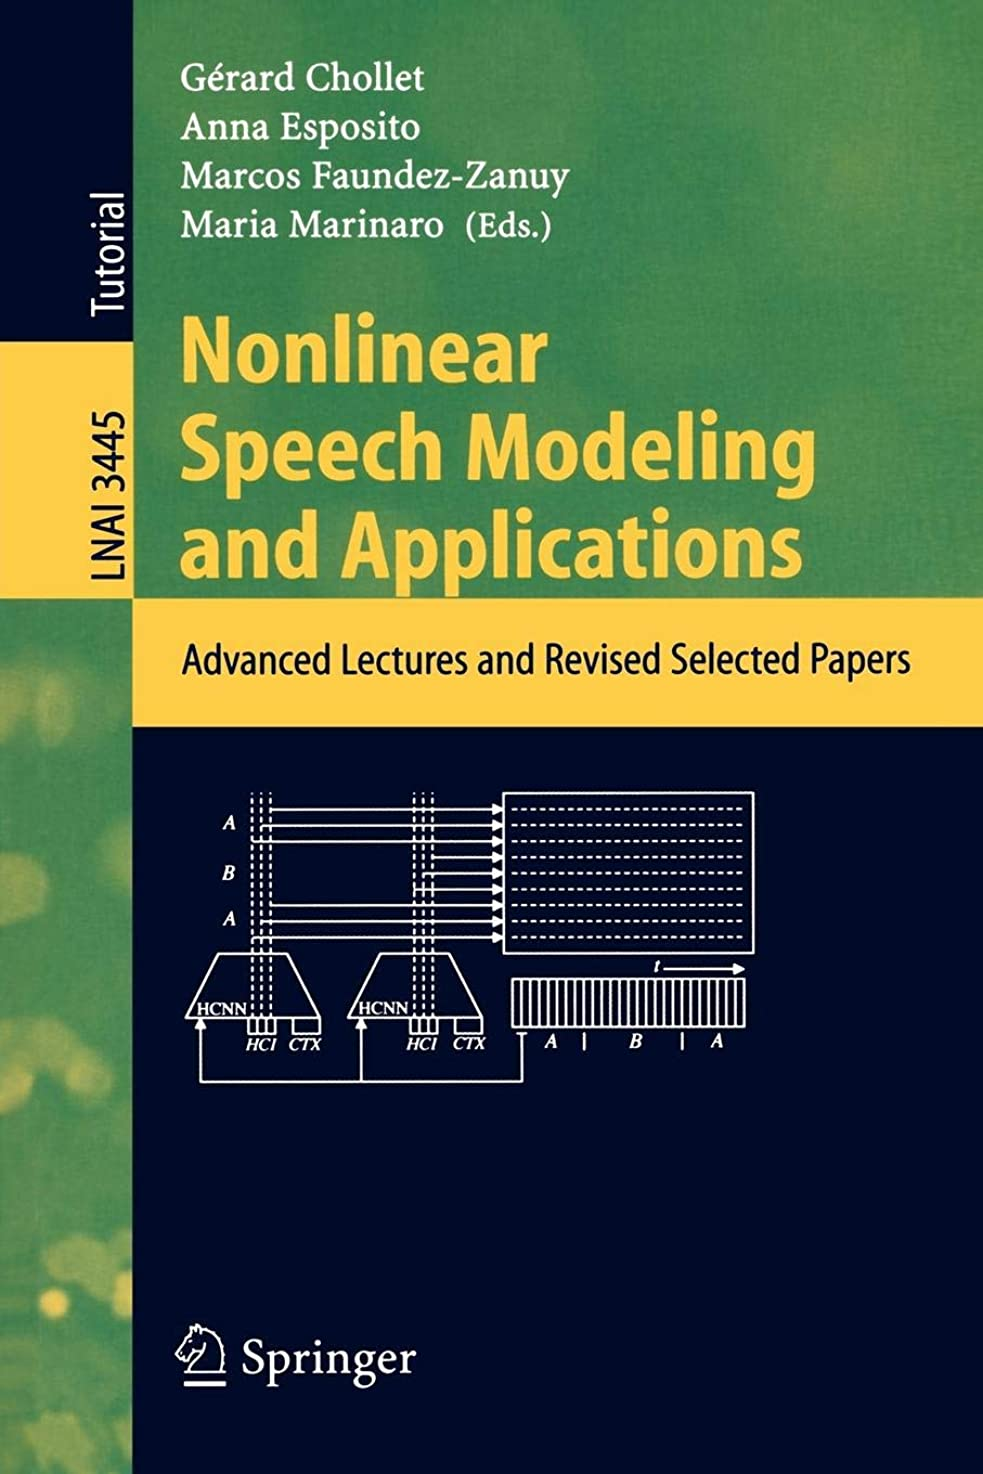 殺す小さいショッキングNonlinear Speech Modeling and Applications: Advanced Lectures and Revised Selected Papers (Lecture Notes in Computer Science)